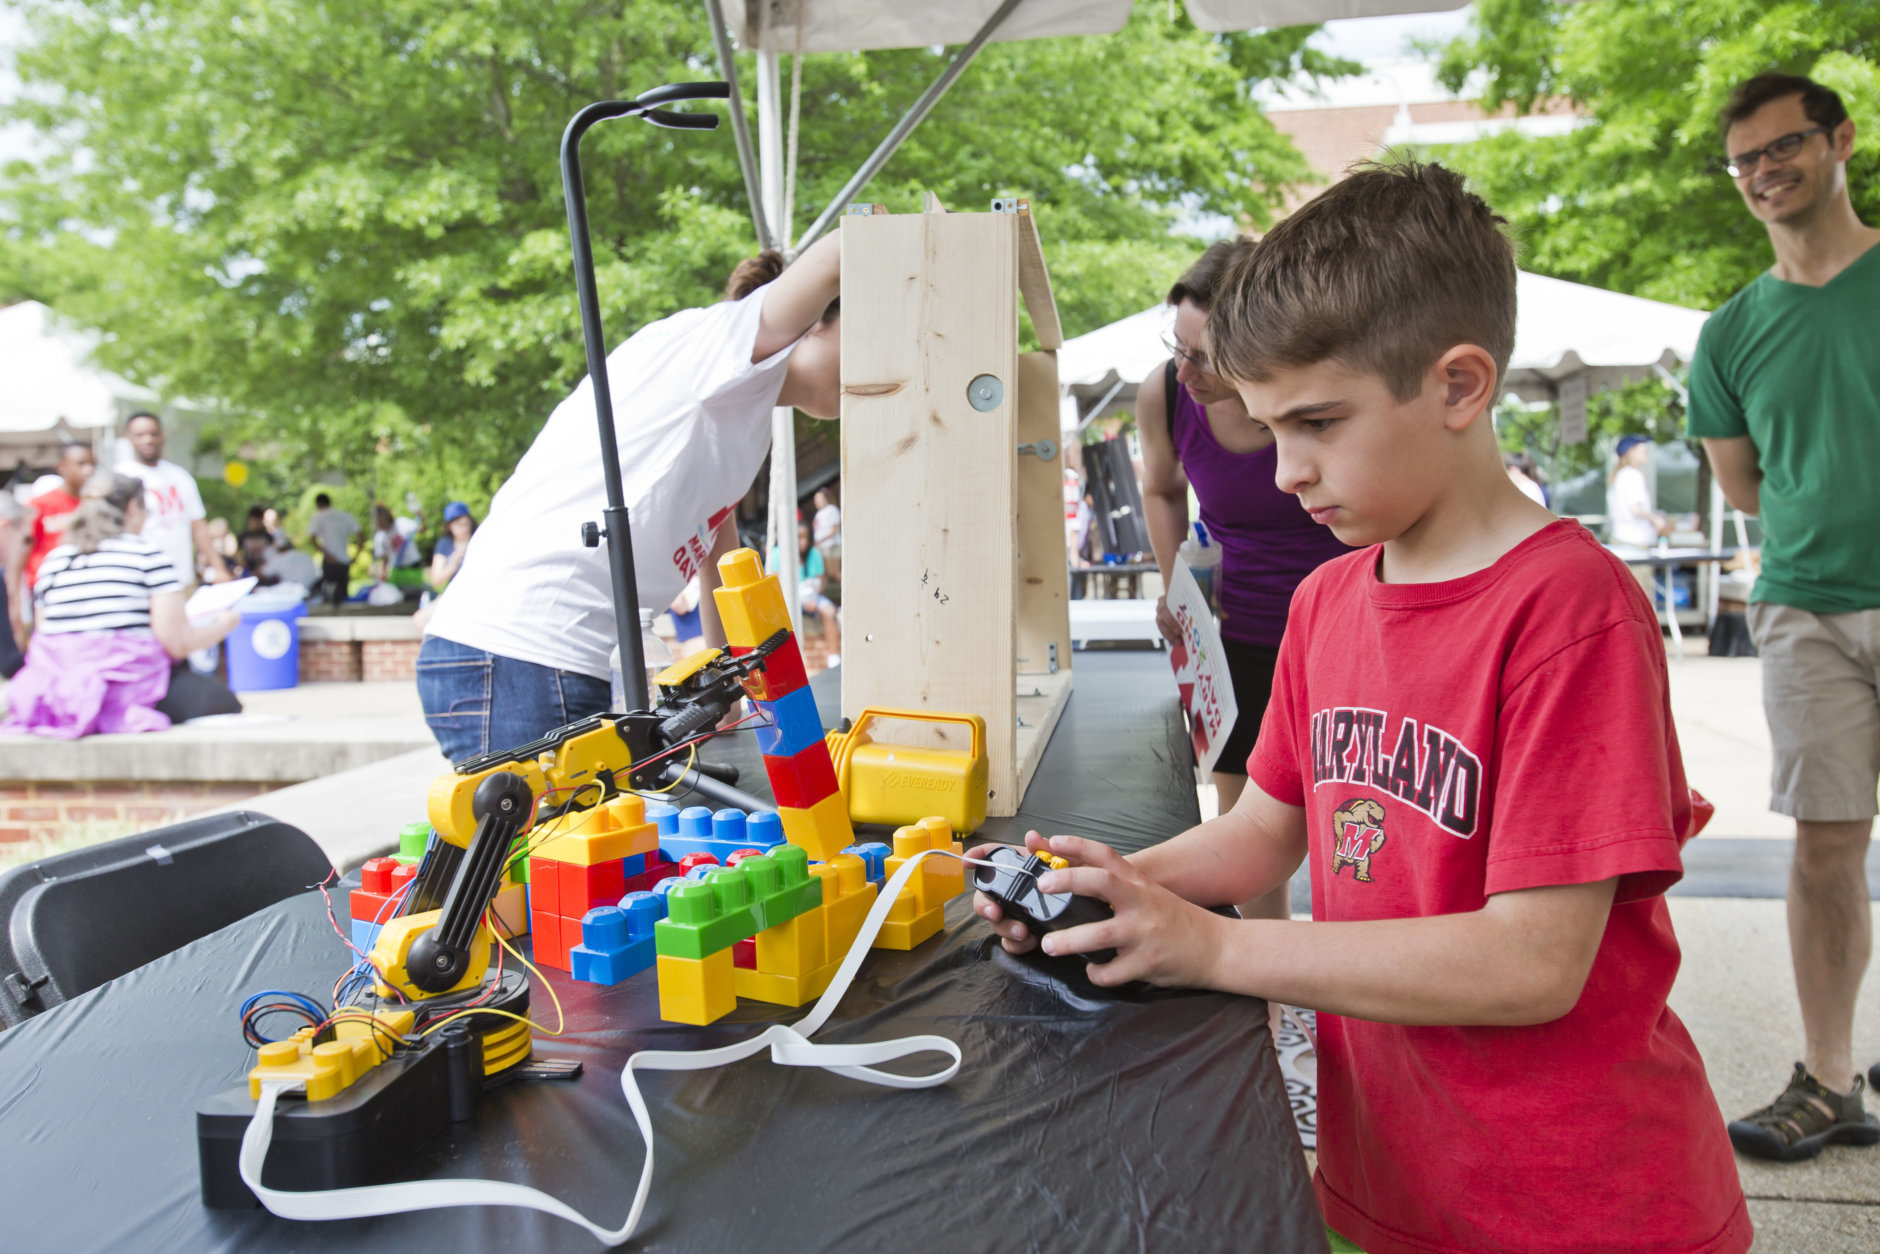 You can learn how to program LEGO Mindstorm robots with middle school students in UMD's CompSciConnect program in Science & Tech Way. (Courtesy University of Maryland)